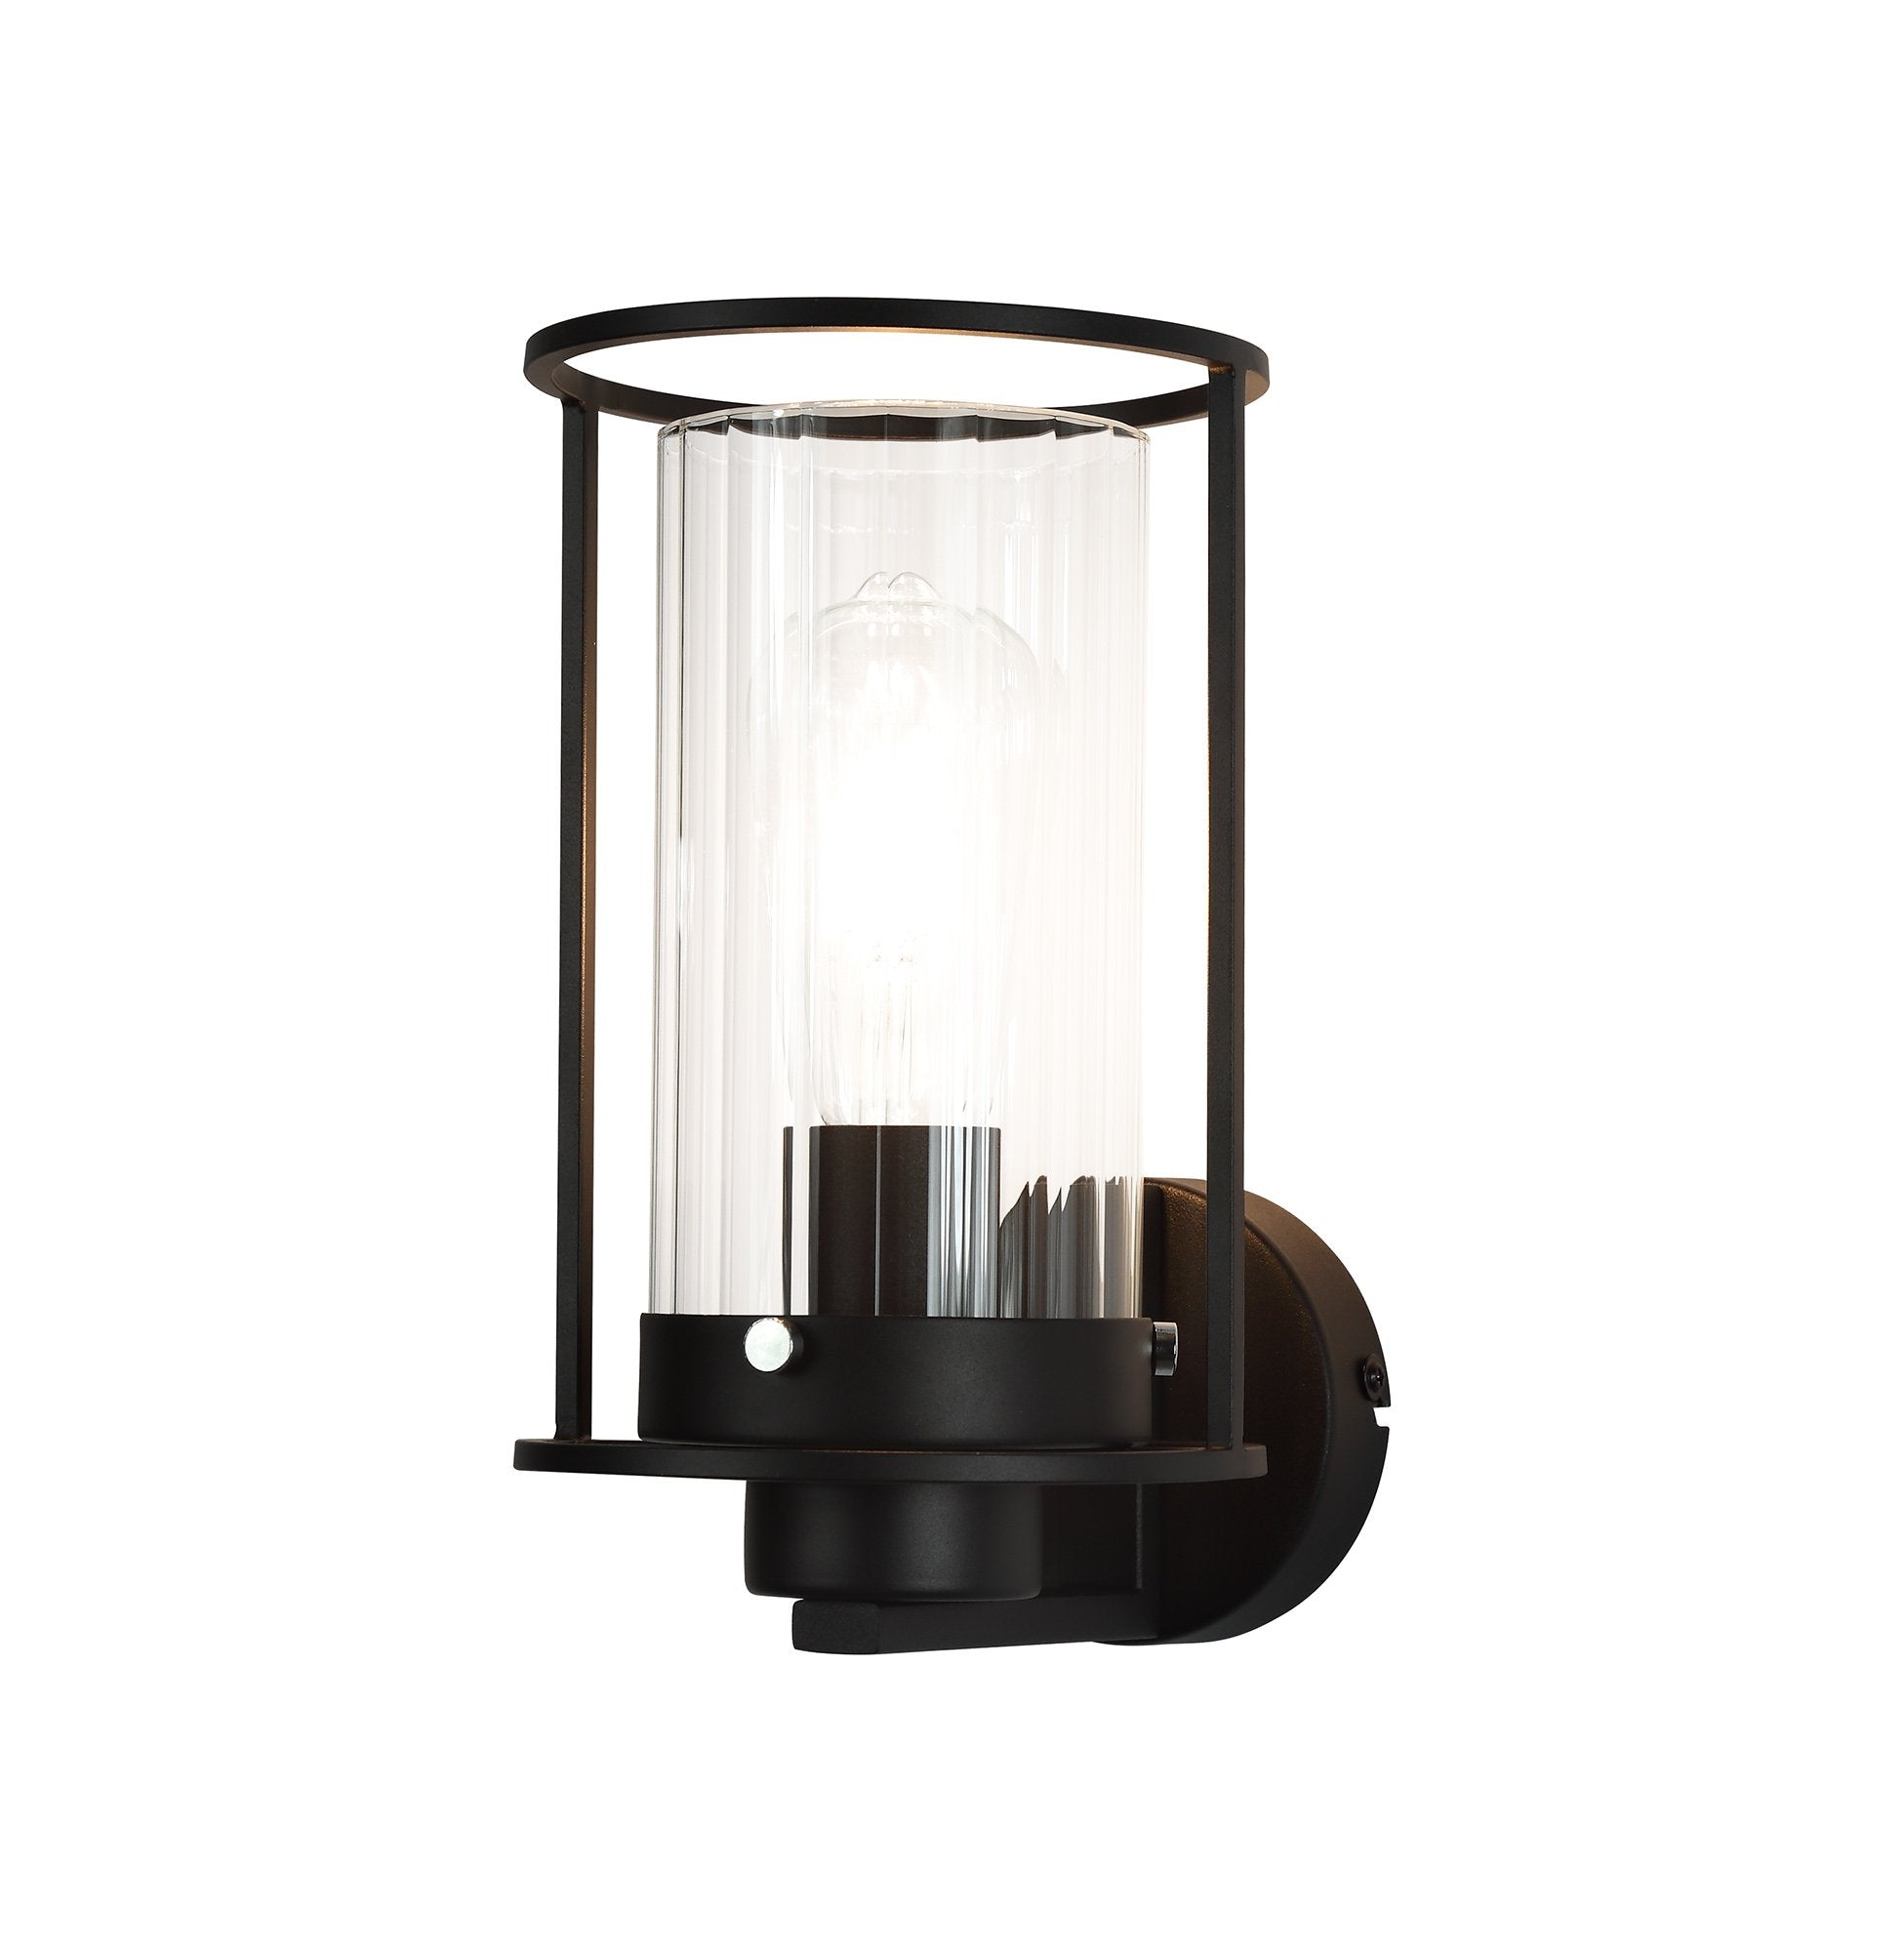 LIBRA Wall Light, 1 Light E27, Black/Clear Glass (2LT159A)